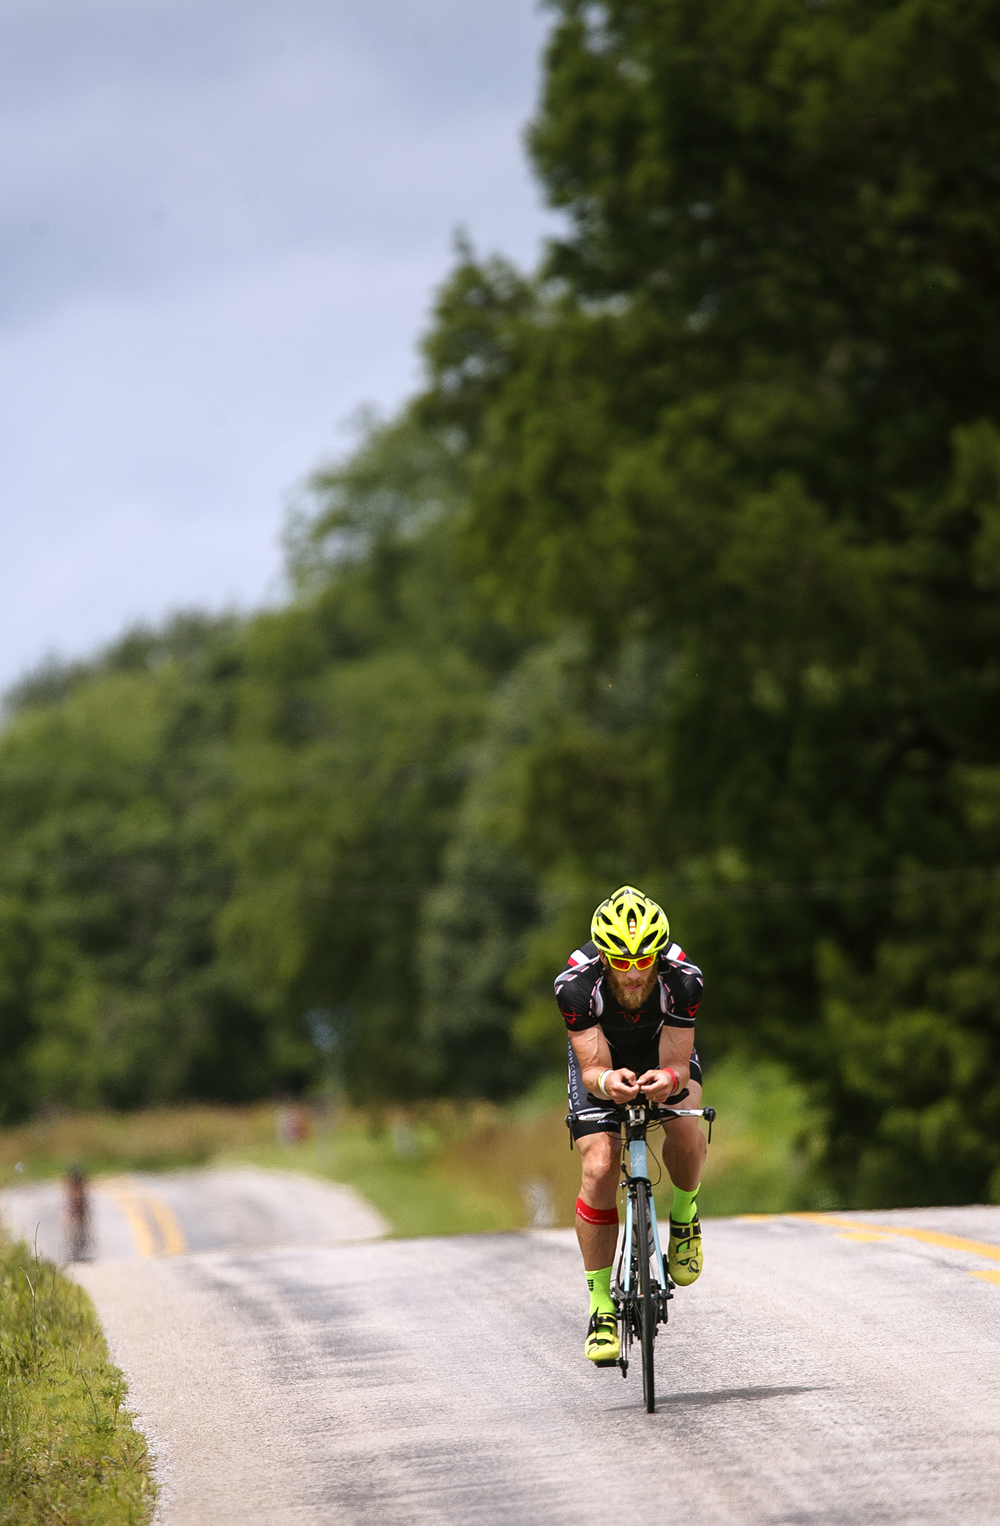 James Lawrence pedals back toward Menard County as he works toward completing his daily Ironman Triathlon miles Sunday, June 21, 2015. Lawrence is on a quest to complete 50 Ironman courses in 50 consecutive days through all 50 States. Ted Schurter/The State Journal-Register